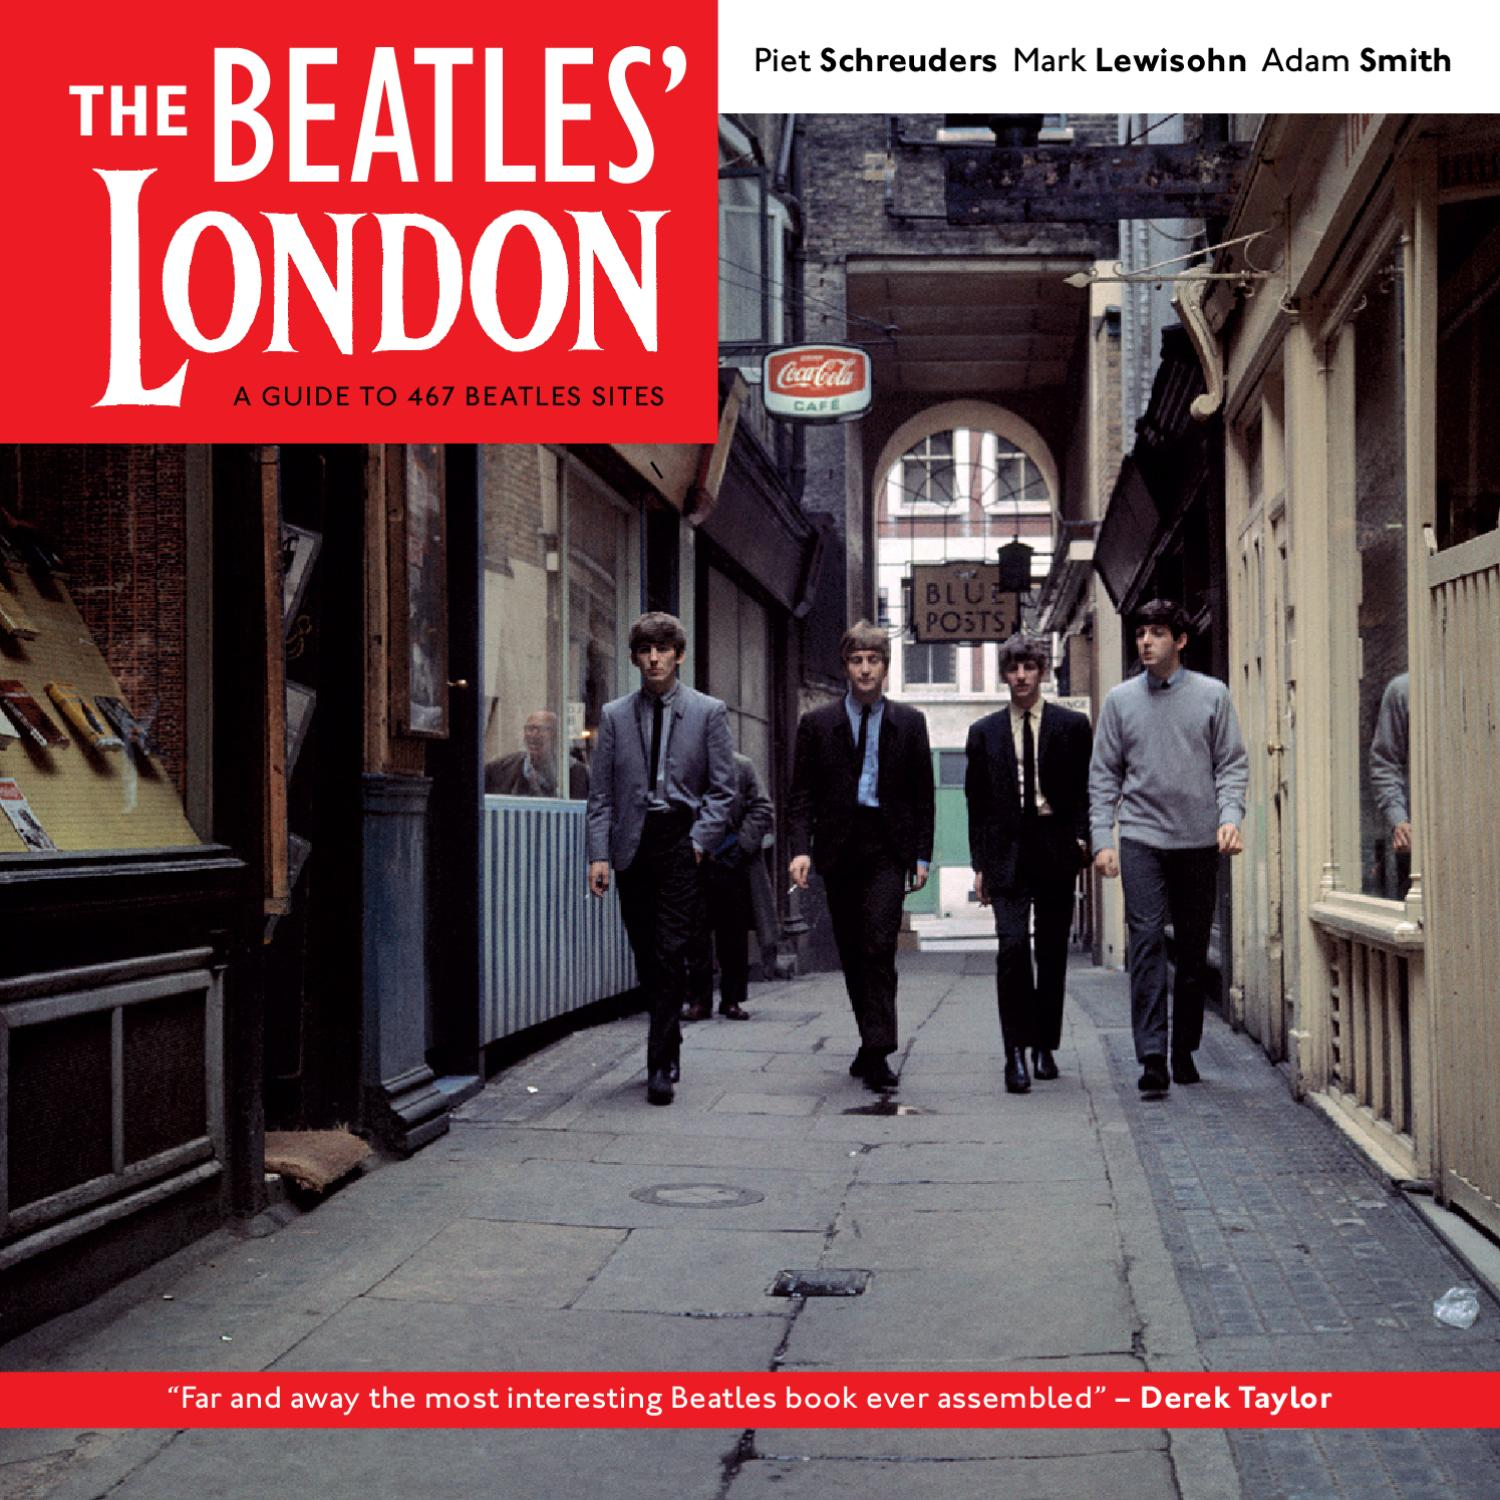 The Beatles London By Piet Schreuders Issuu